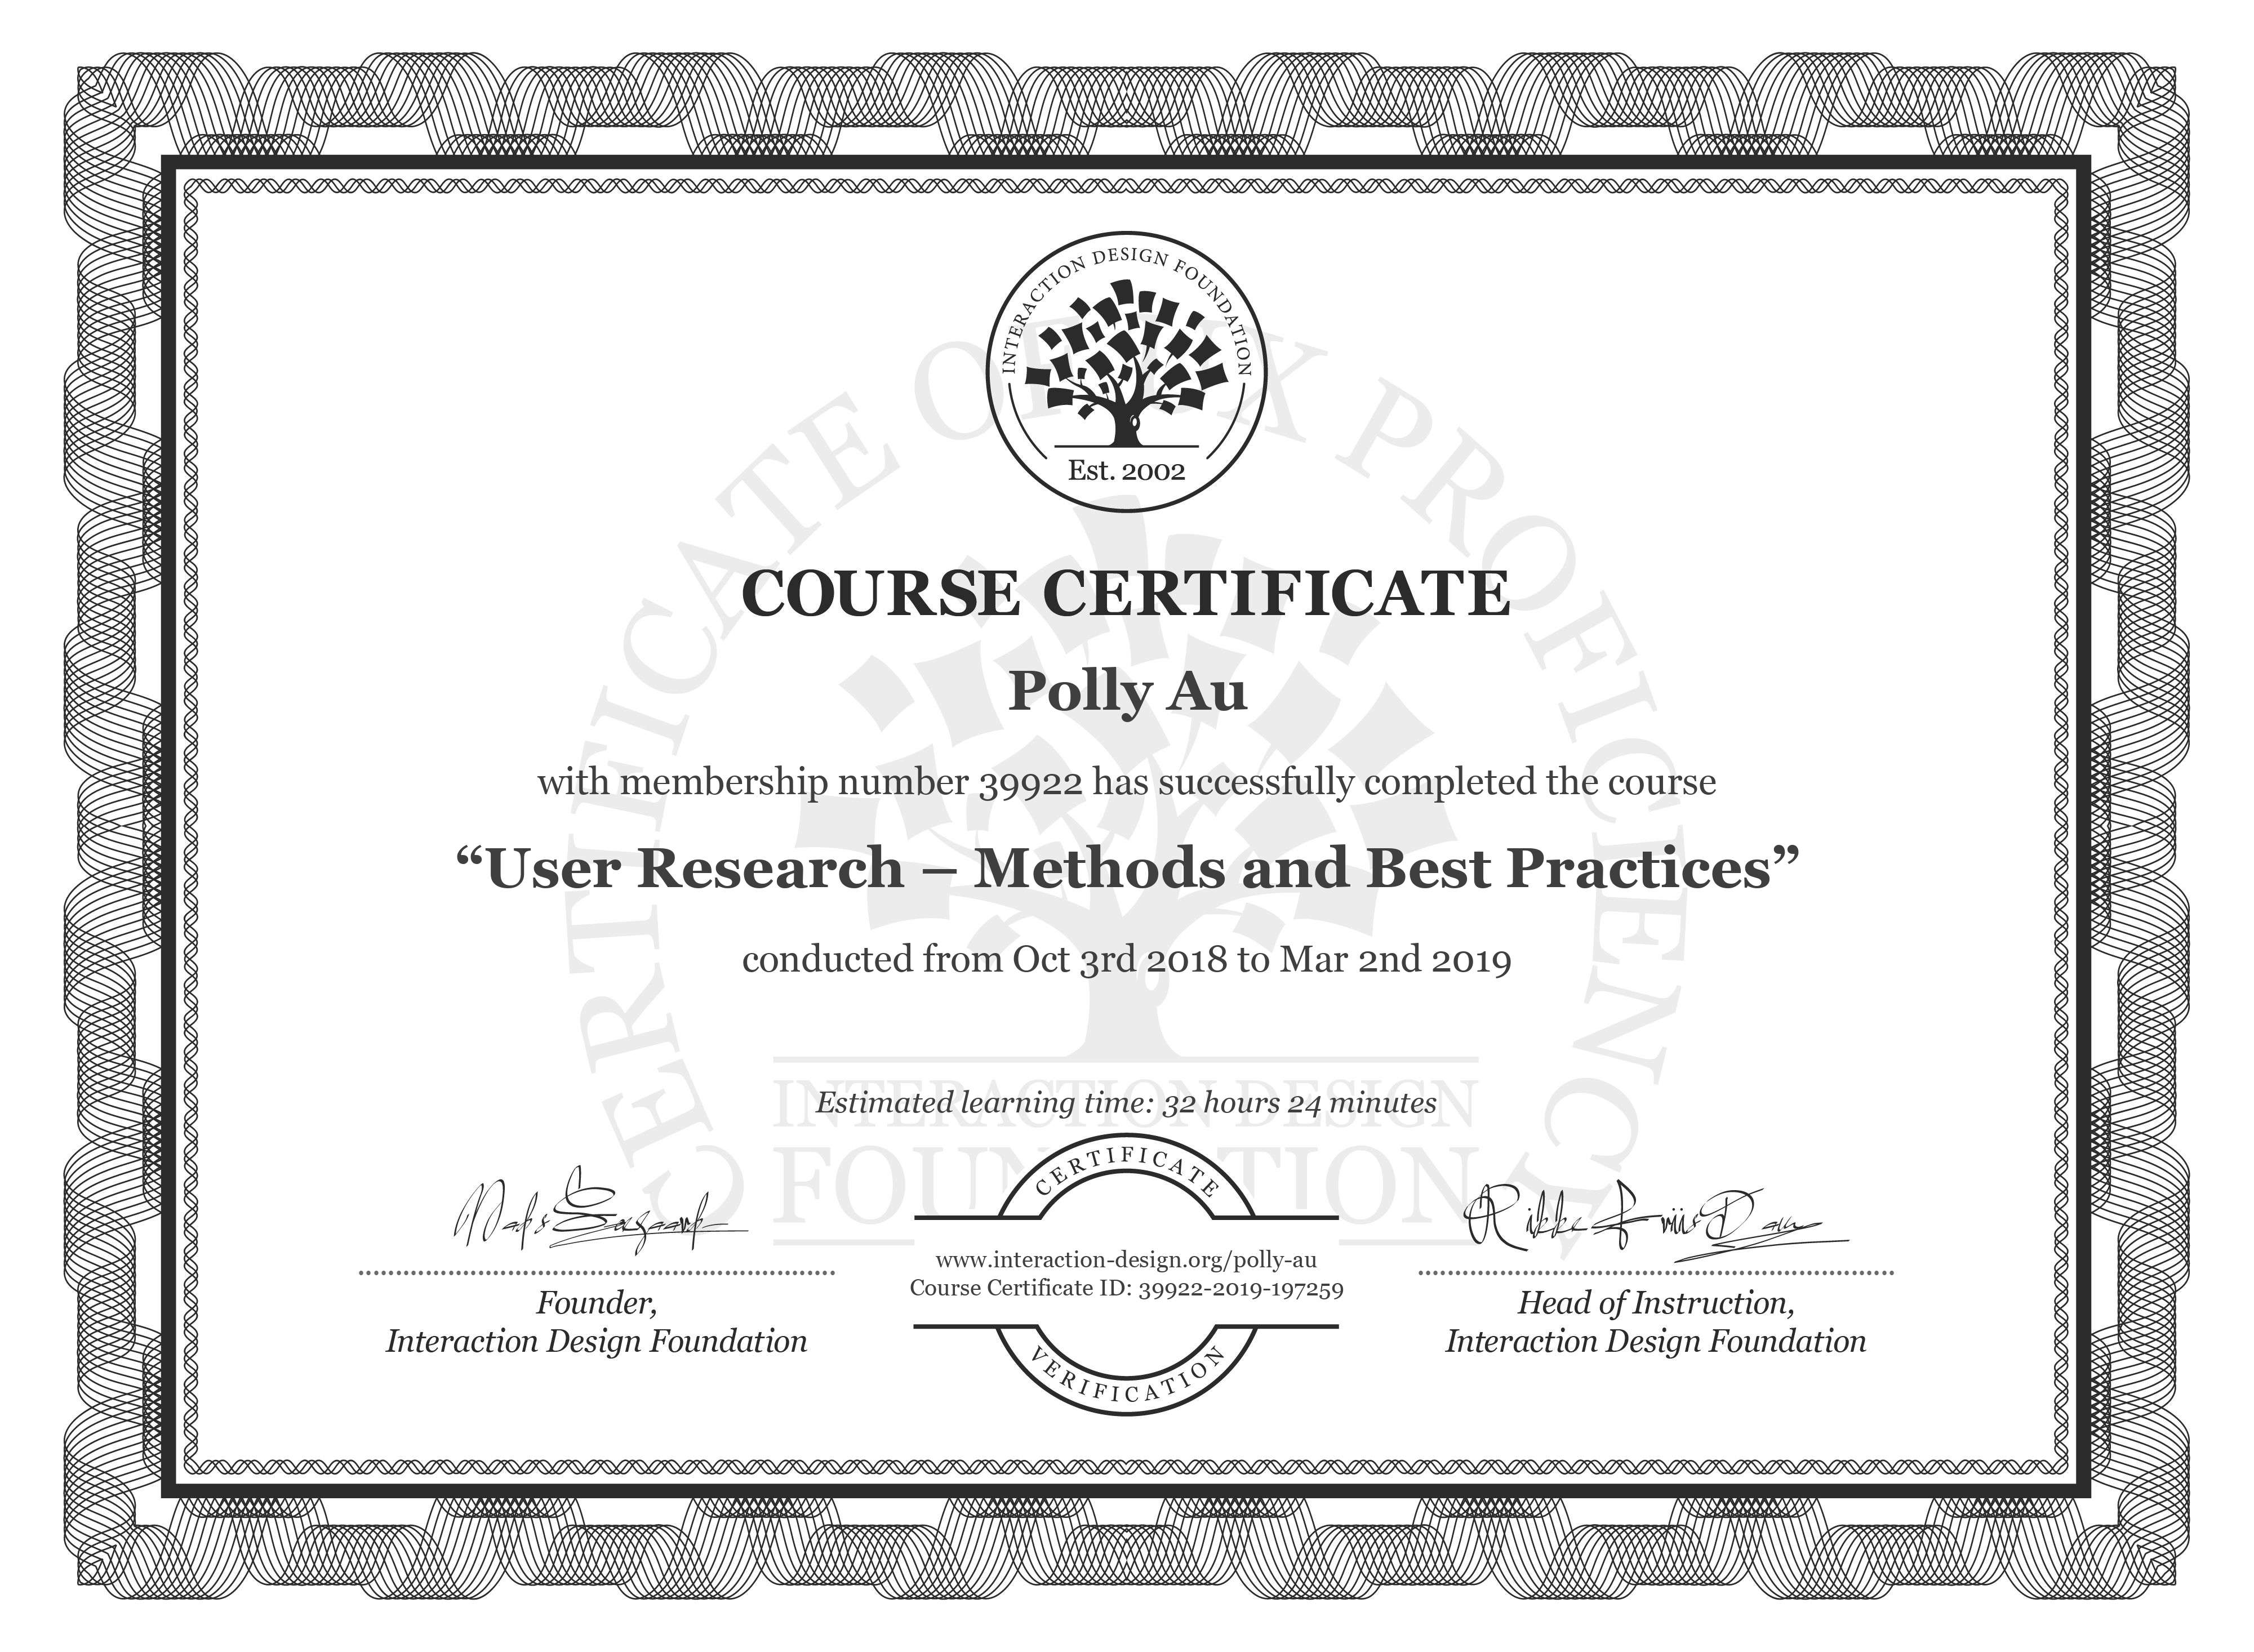 Polly Au: Course Certificate - User Research – Methods and Best Practices